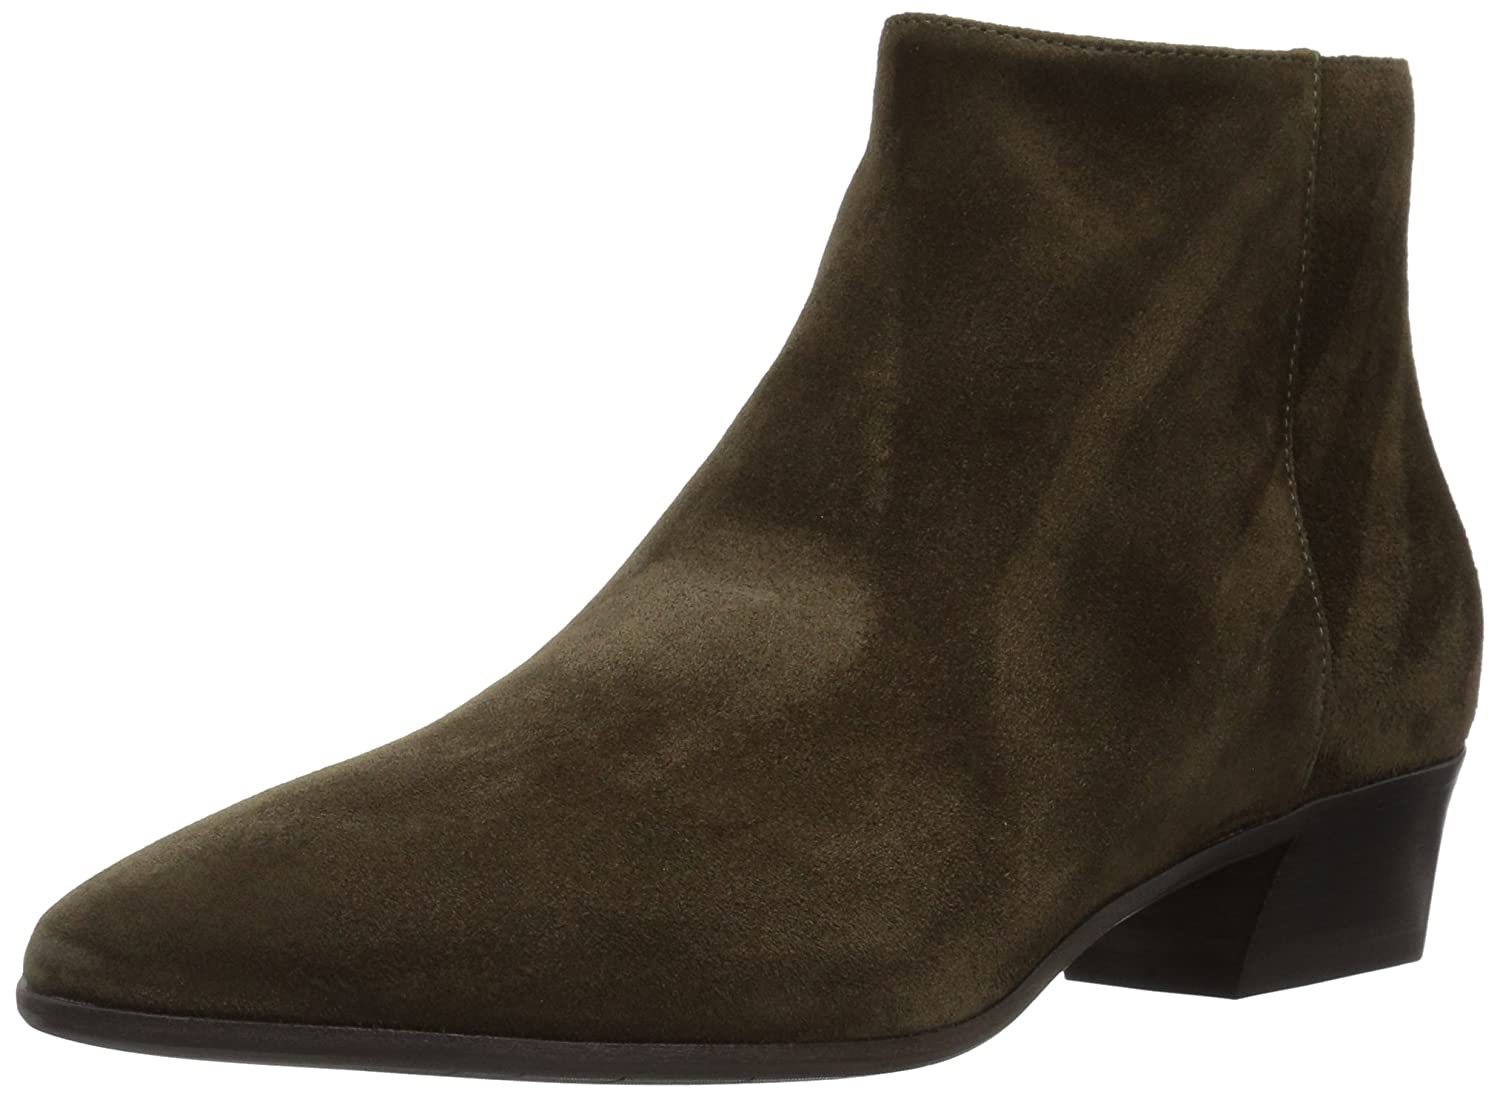 Aquatalia Women's Fire Suede Ankle Boot B06WVBFY5Y 7.5 M US|Olive